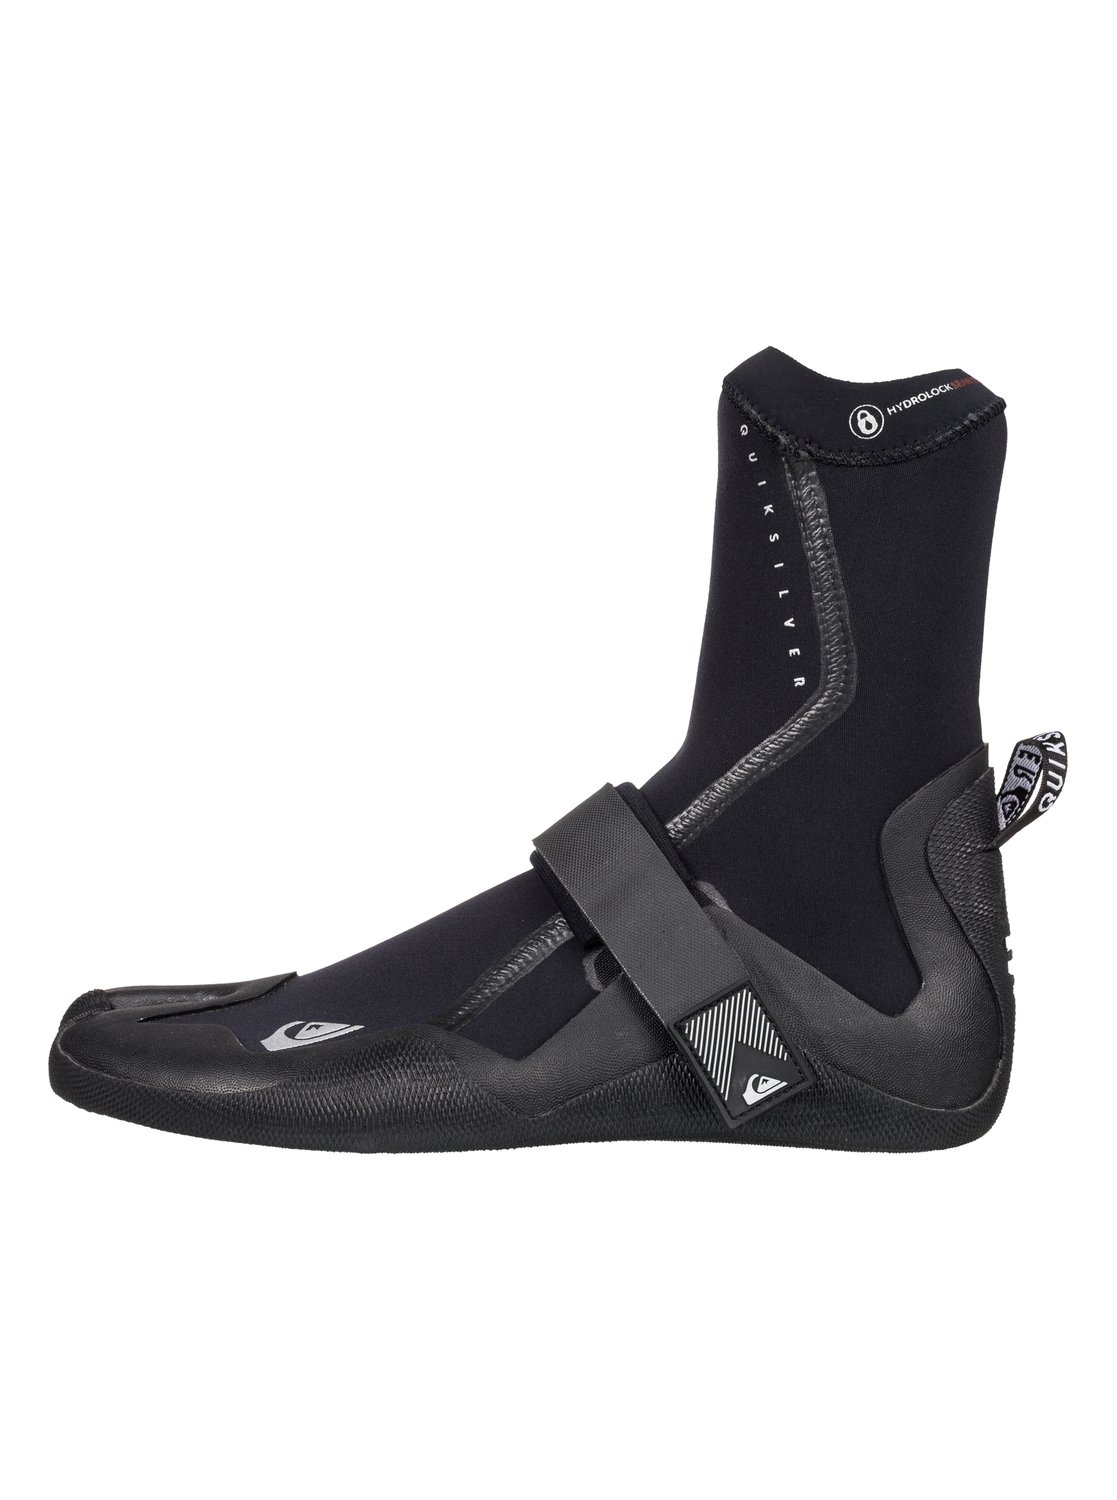 Highline Performance 3mm - Split Toe Surf Boots